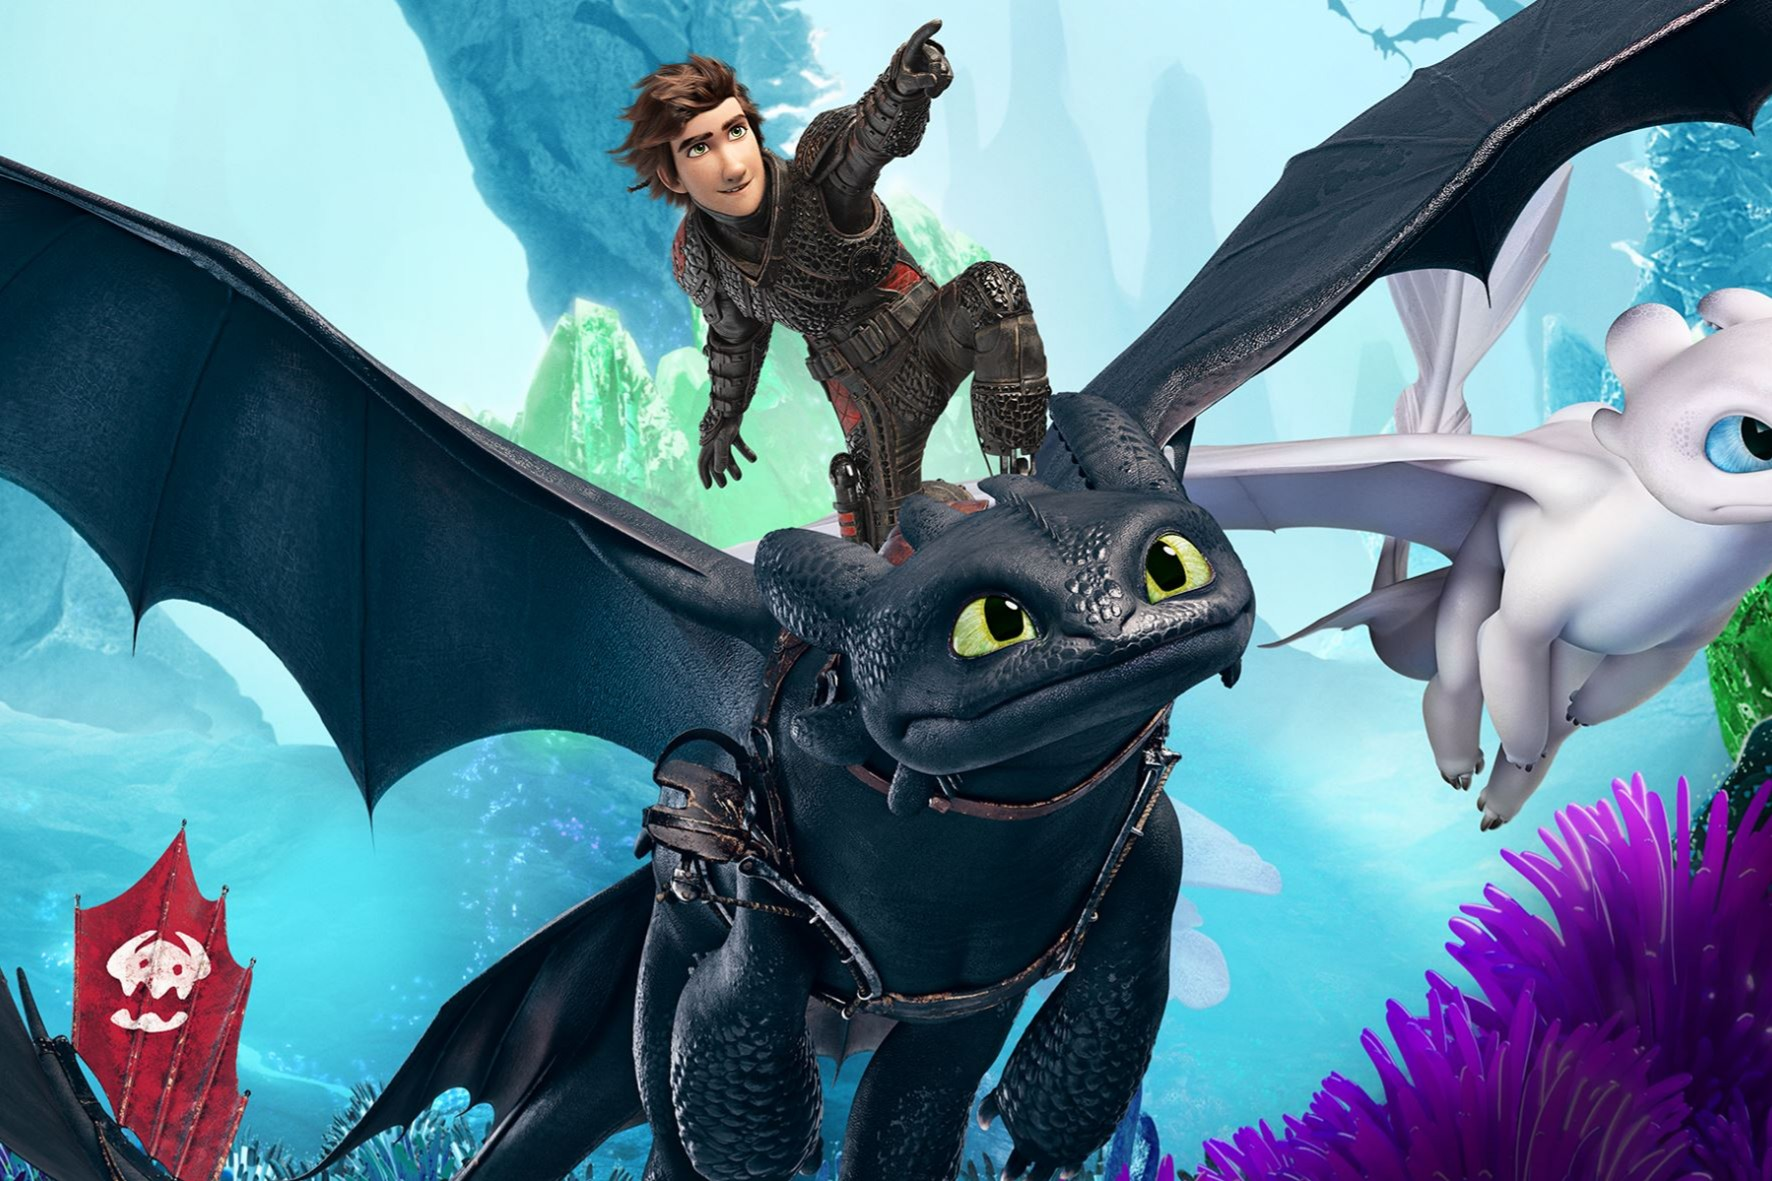 how to train your dragon 3 characters names and pictures,how to train your dragon 2 characters,how to train your dragon 3 cast and characters,how to train your dragon 3 background music,how to train a dragon dragon characters,how to train a dragon names,how to train a dragon dragon names,how to tame your dragon dreamworks,how many are there of how to train your dragon,how to train your dragon 2 character list,how to train your dragon 3 characters,how to train your dragon 3 dragon names,how to dragon movie,how to train a dragon characters,how to train your dragon 1 characters,how many how to train your dragon